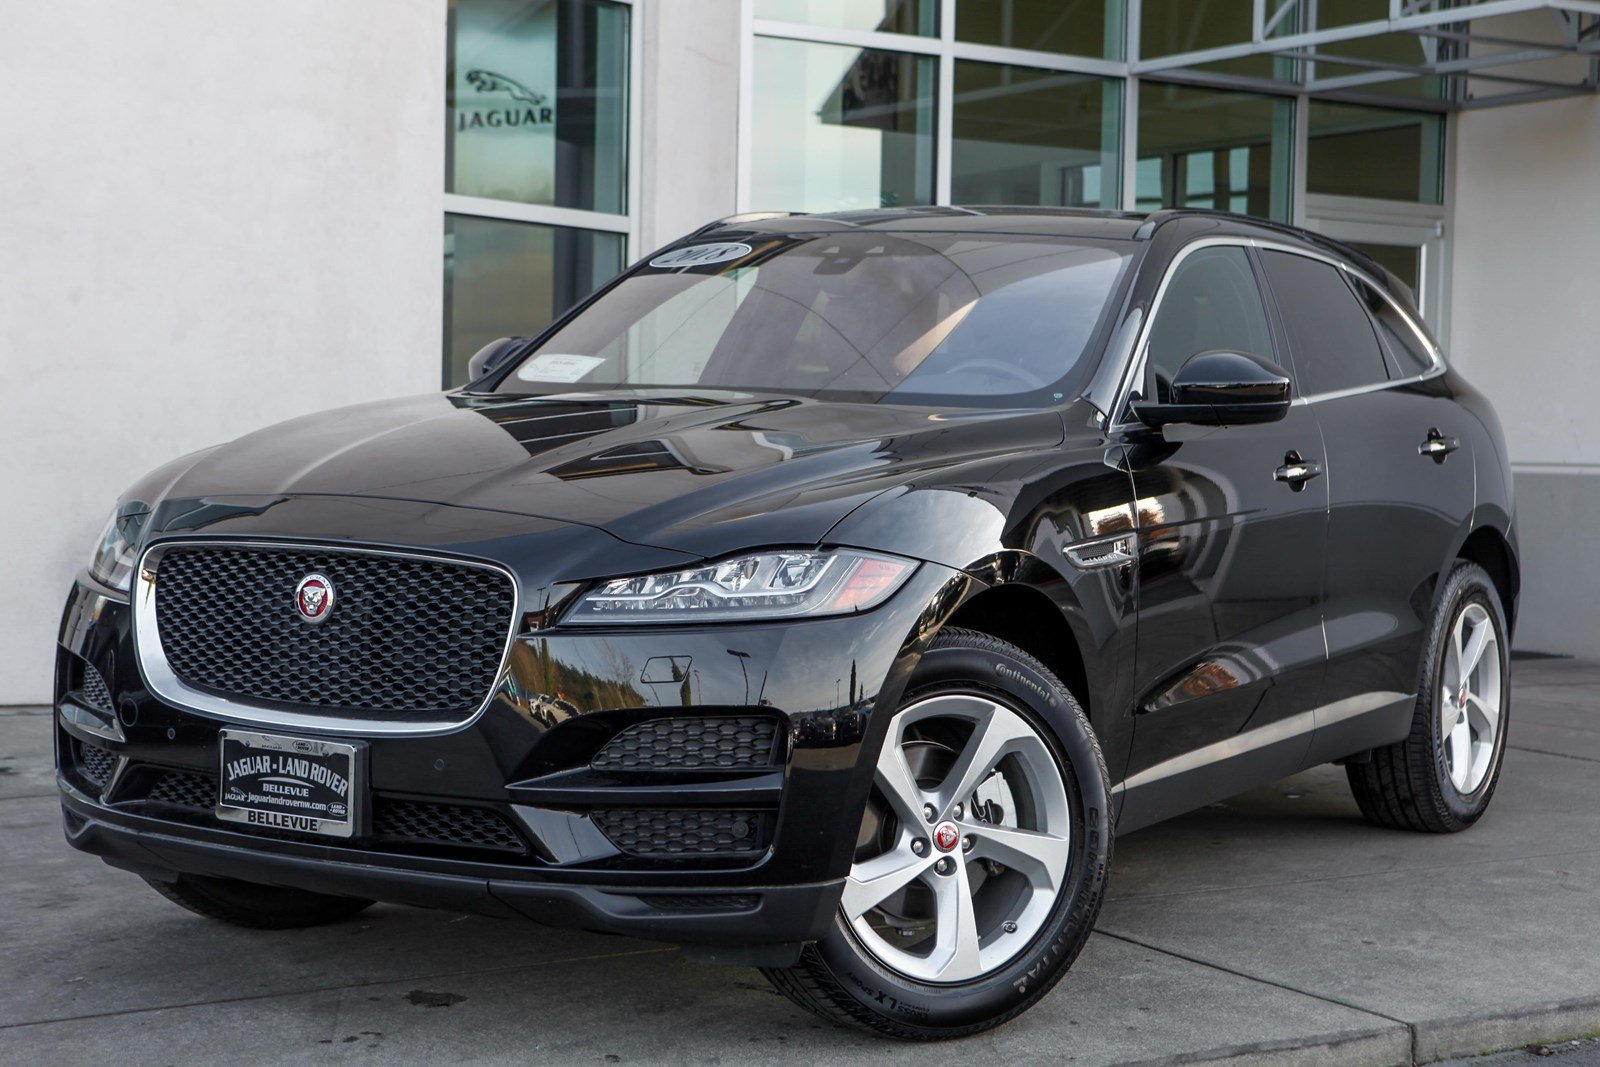 certified pre-owned 2018 jaguar f-pace 20d prestige sport utility in